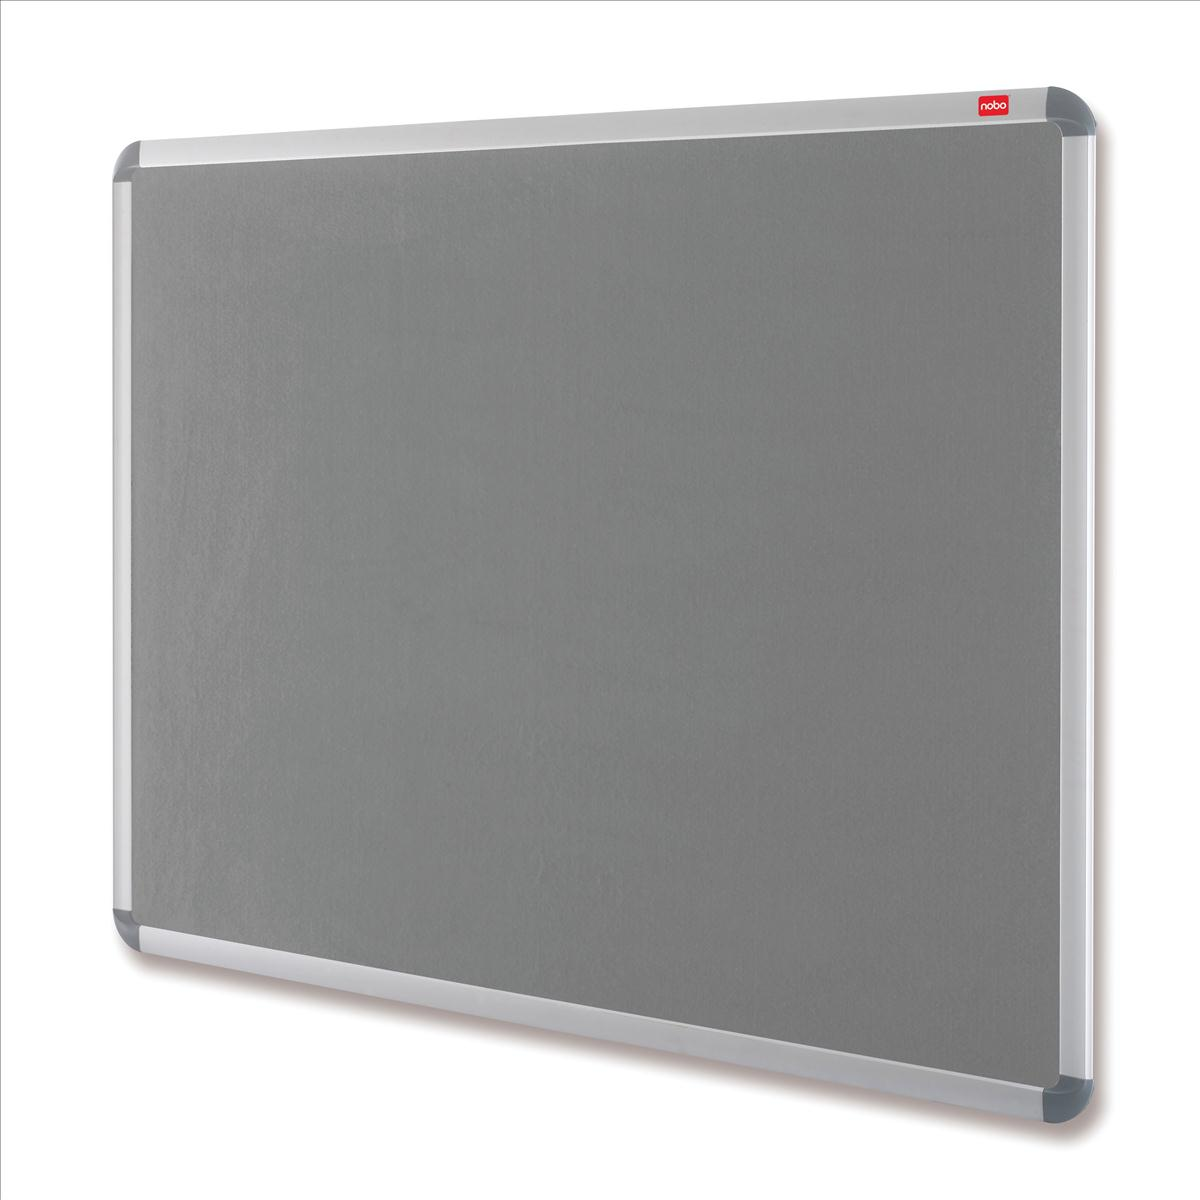 Nobo Euro Plus Noticeboard Felt with Fixings and Aluminium Frame W1528xH1018mm Grey Ref 30234146